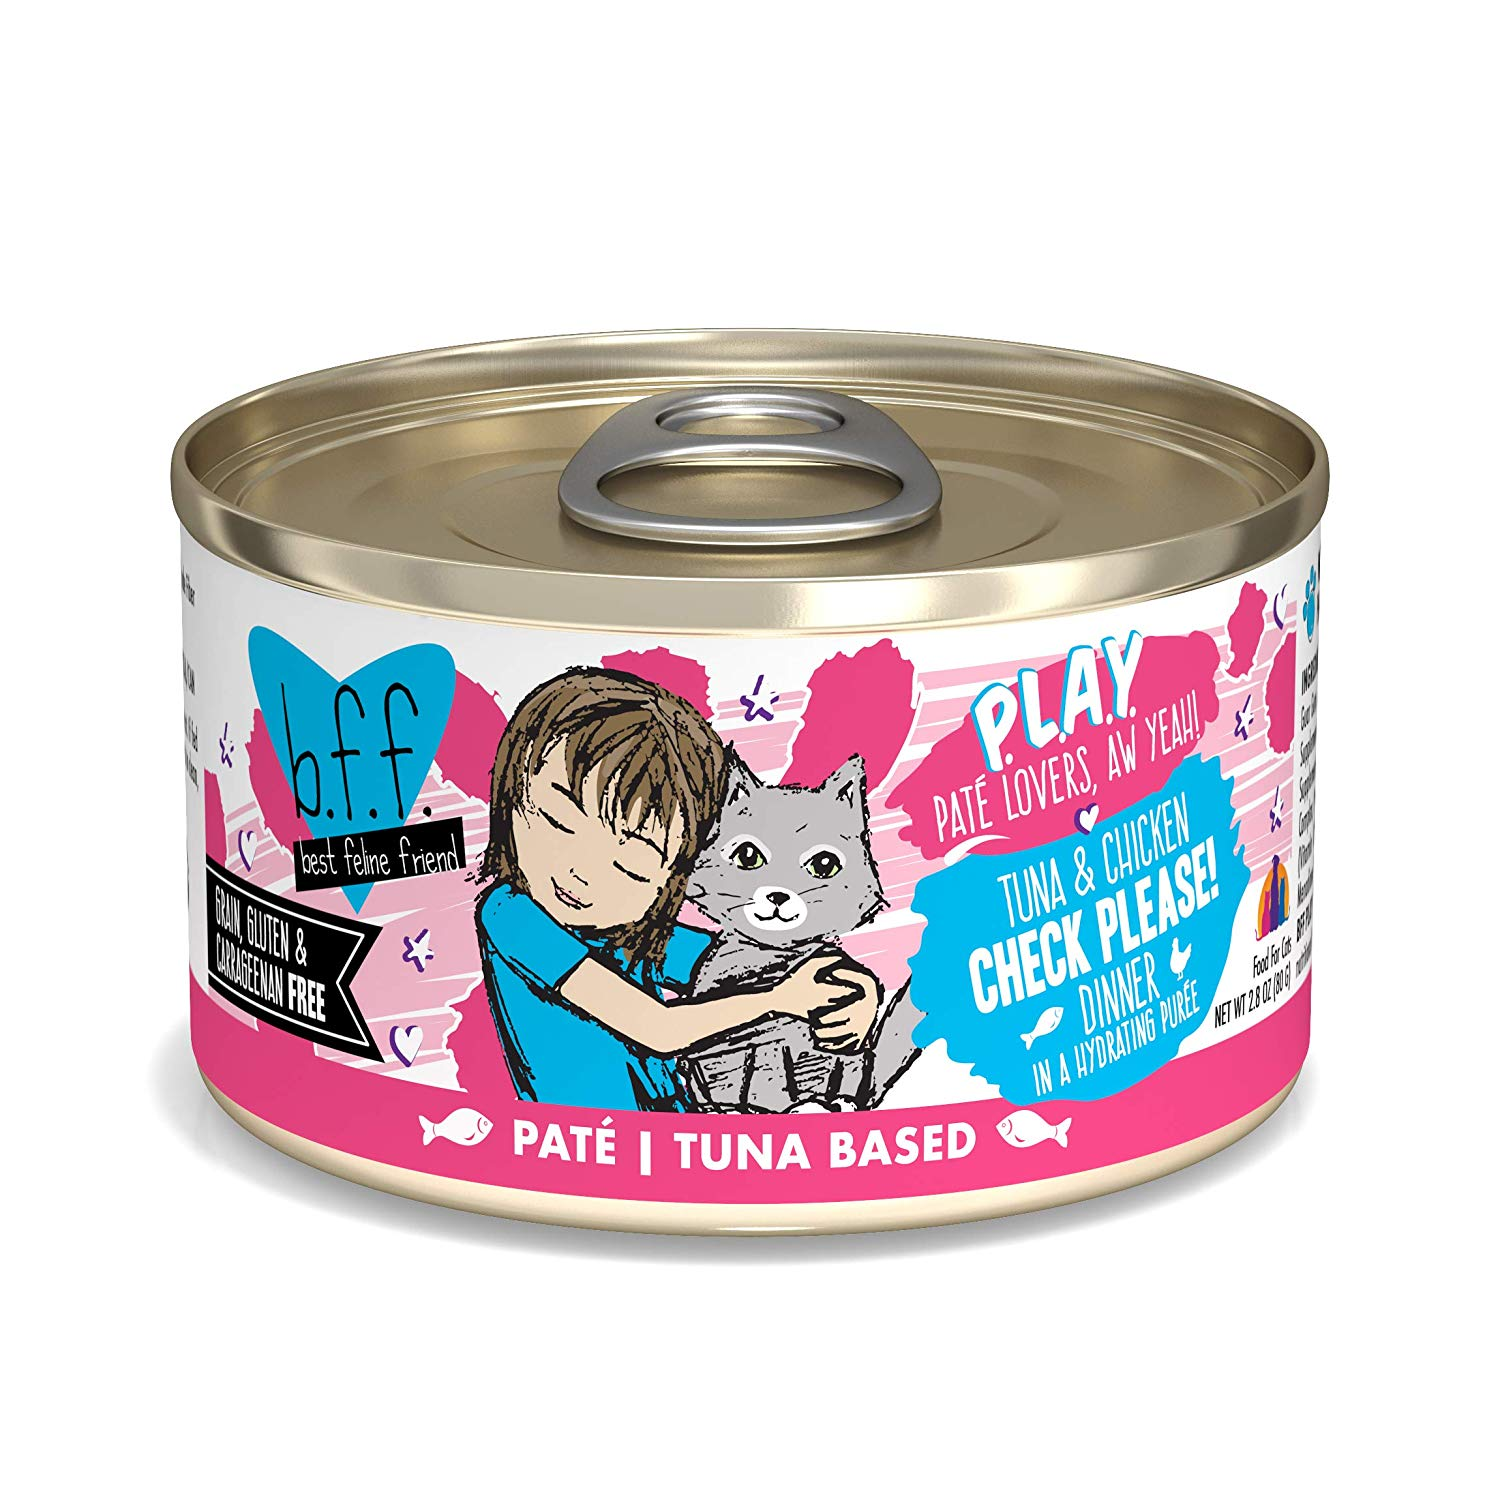 BFF PLAY Pate Check Please! Tuna & Chicken Dinner in Puree Grain-Free Wet Cat Food, 2.8-oz